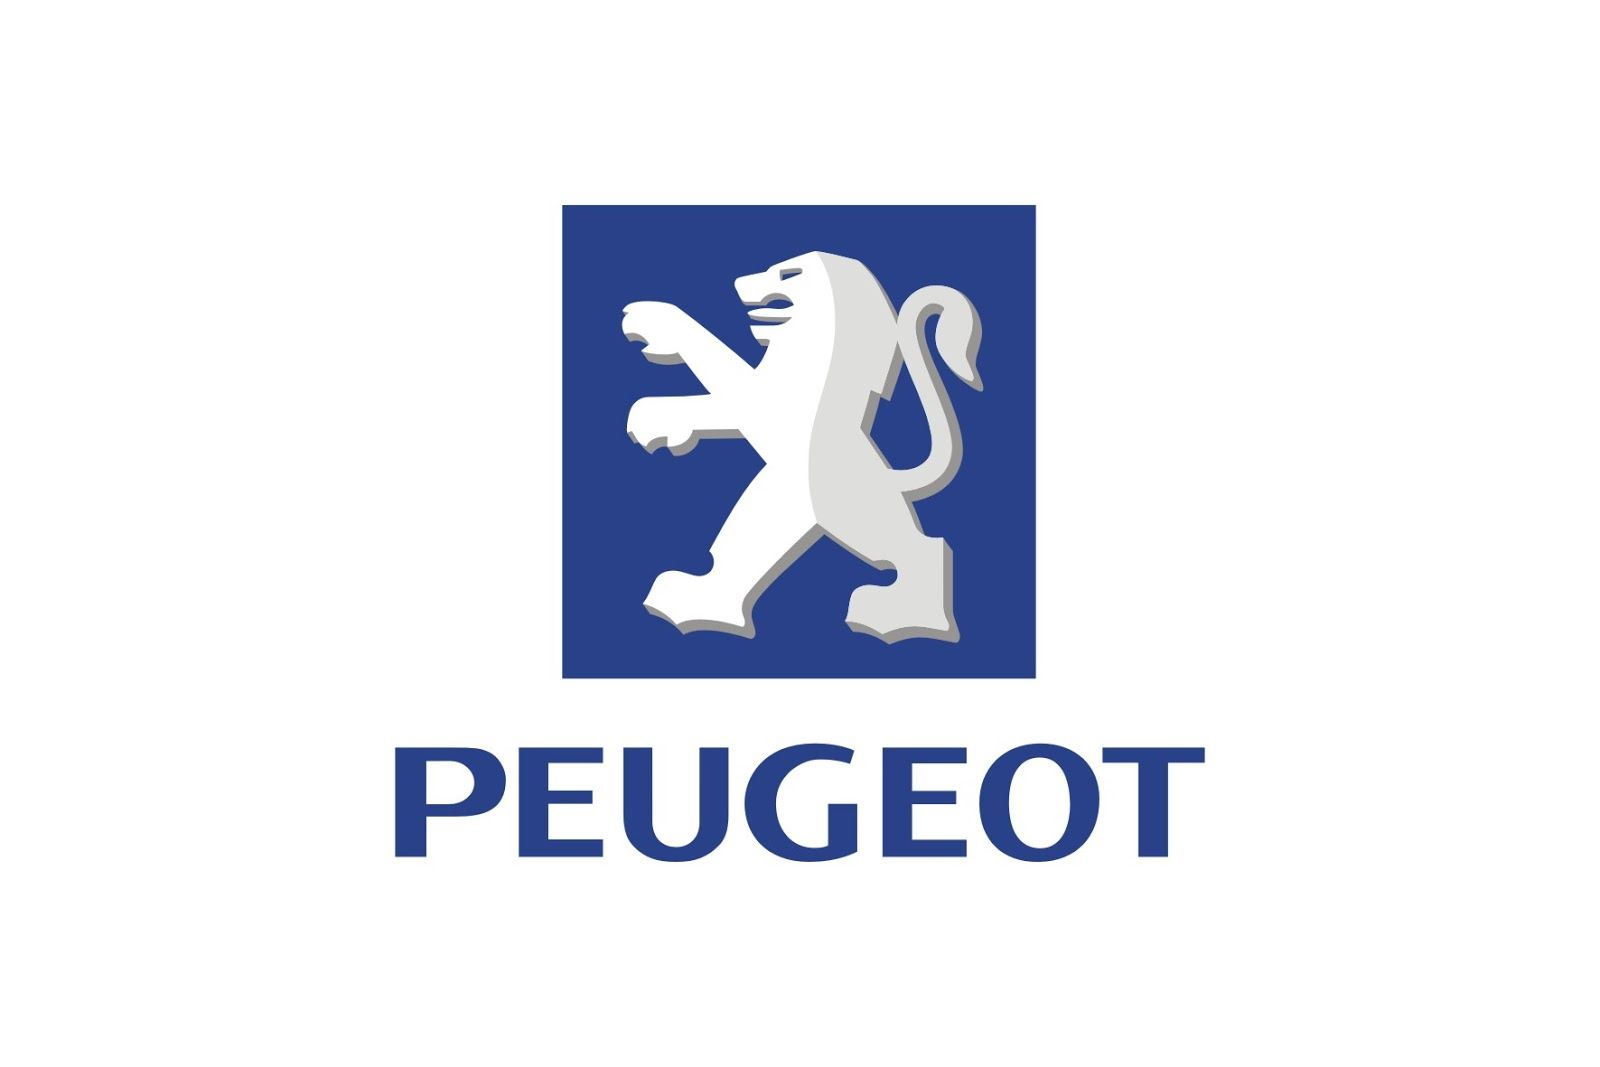 Peugeot Logo - Peugeot Logo, Peugeot Car Symbol Meaning and History | Car Brand ...